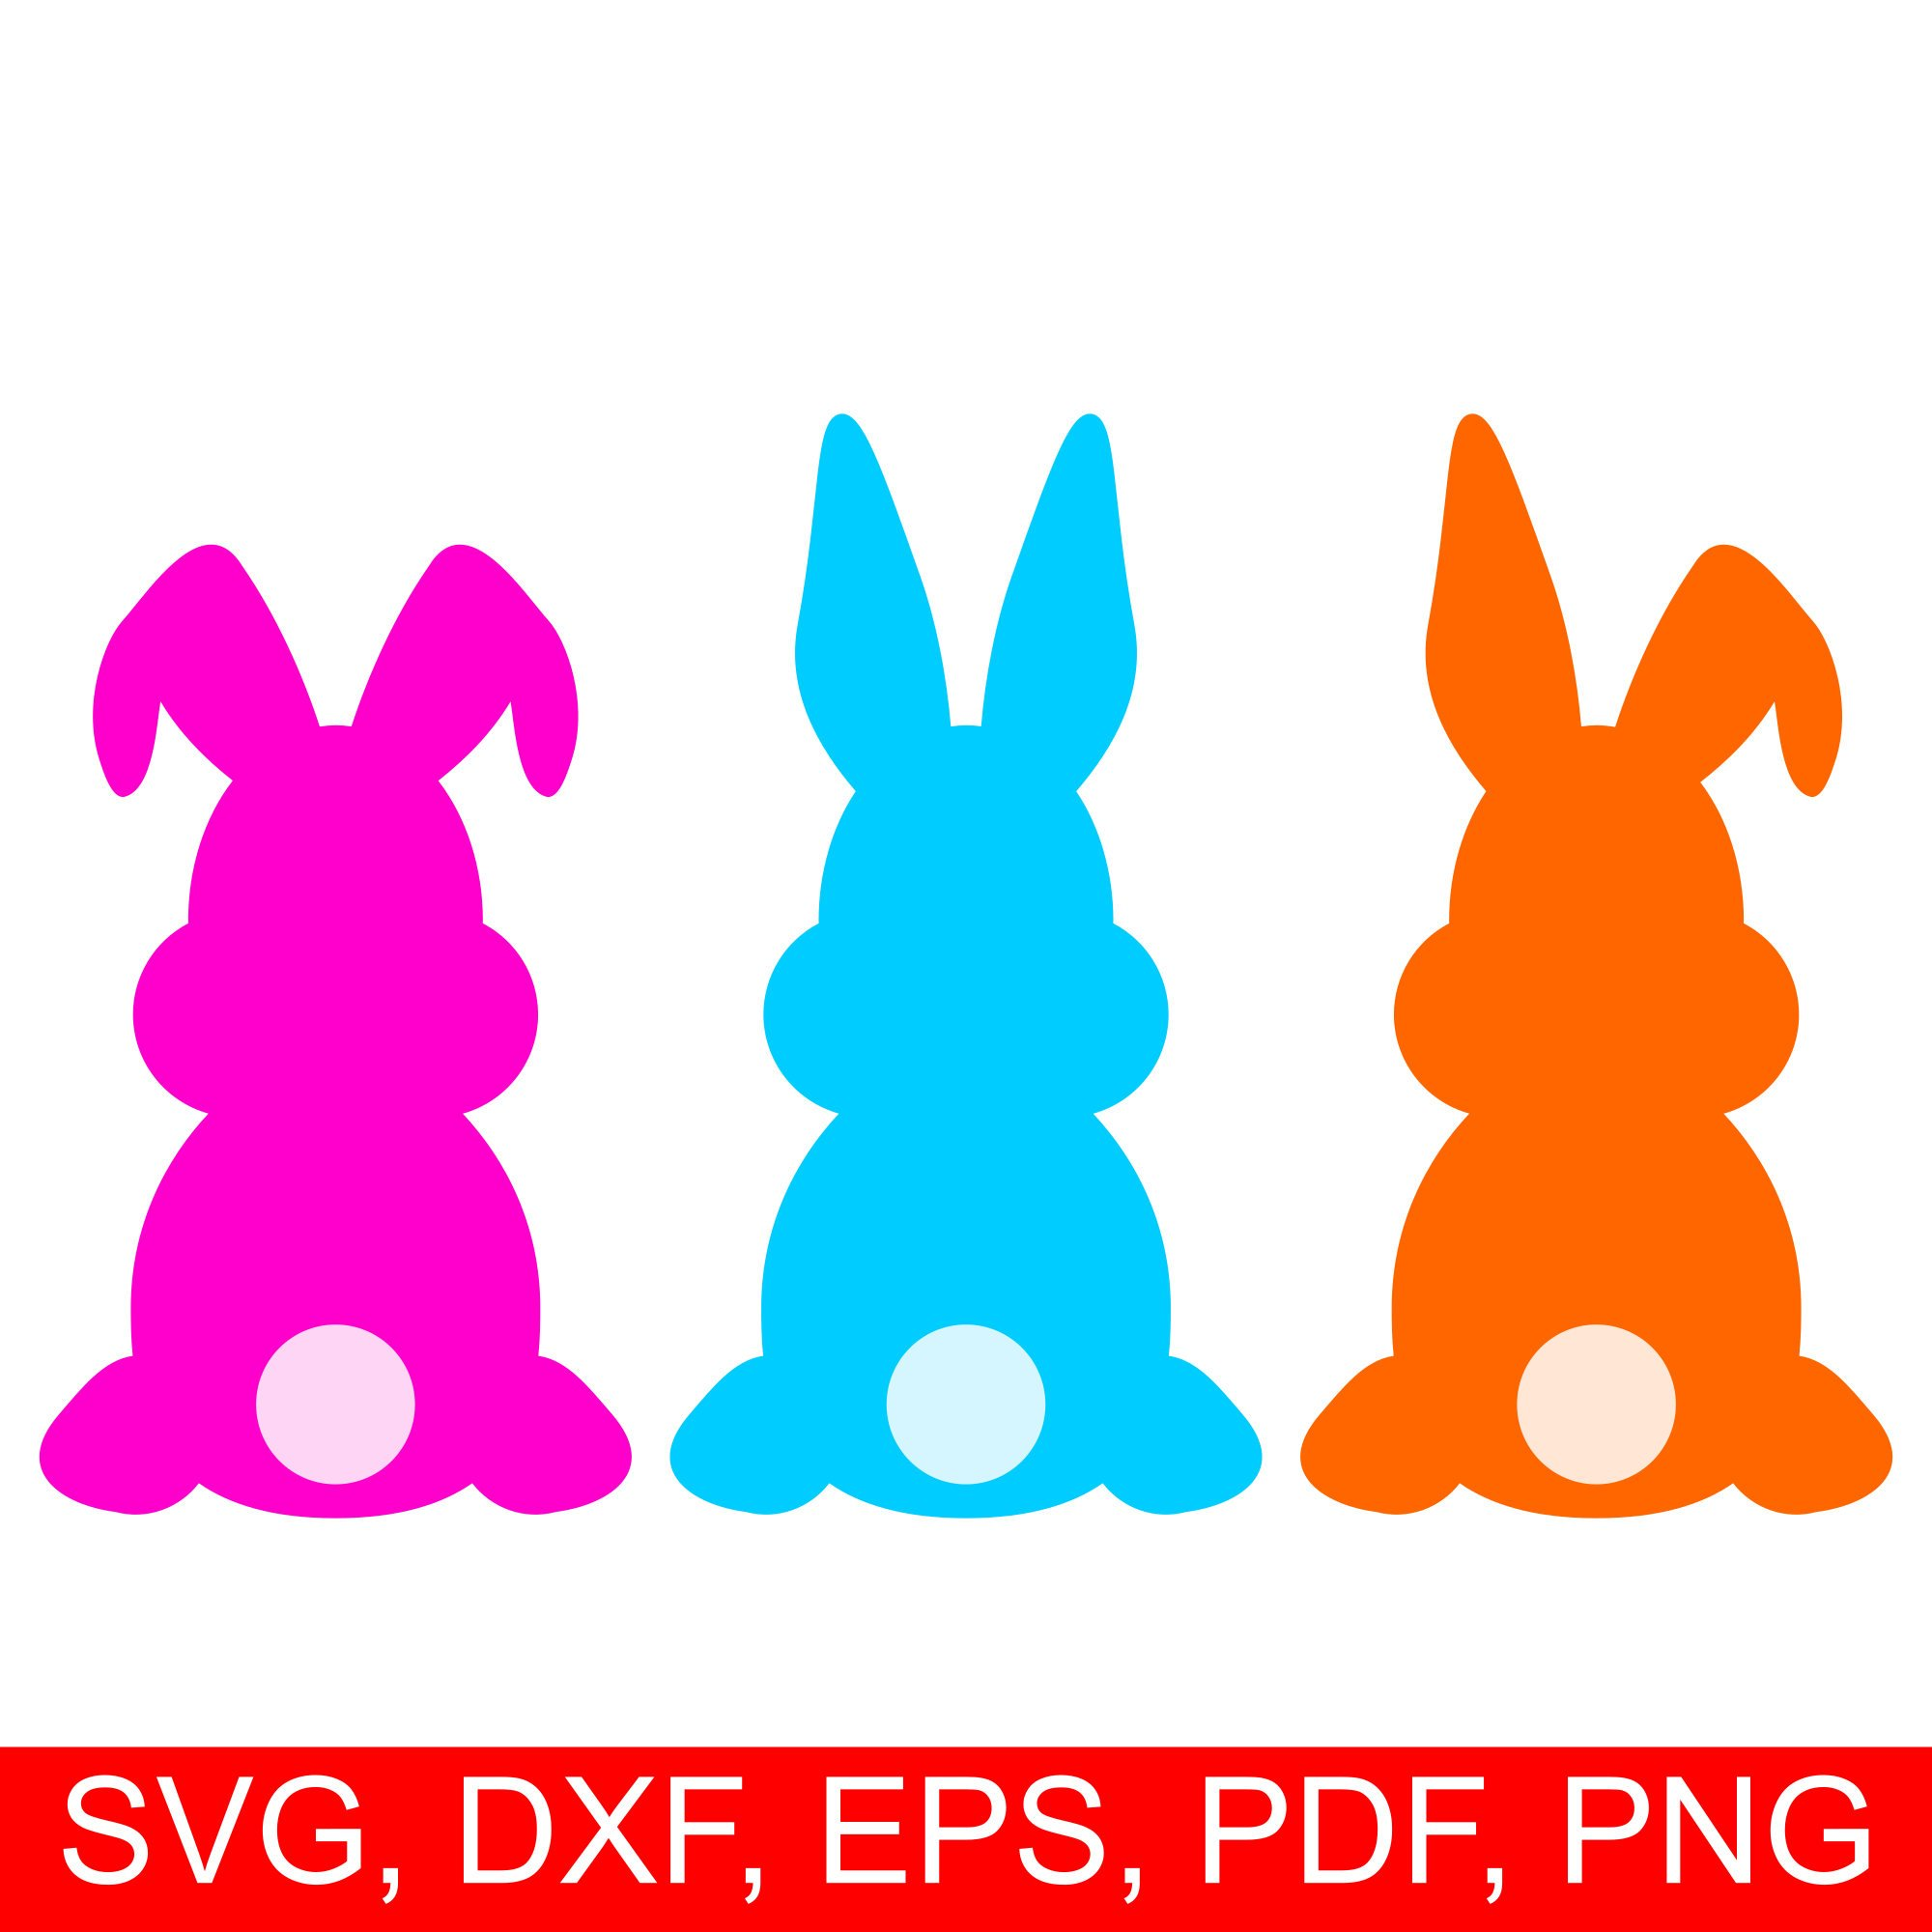 2000x2000 Easter Bunny Svg Cut File And Easter Rabbit Clipart, Set Of 3